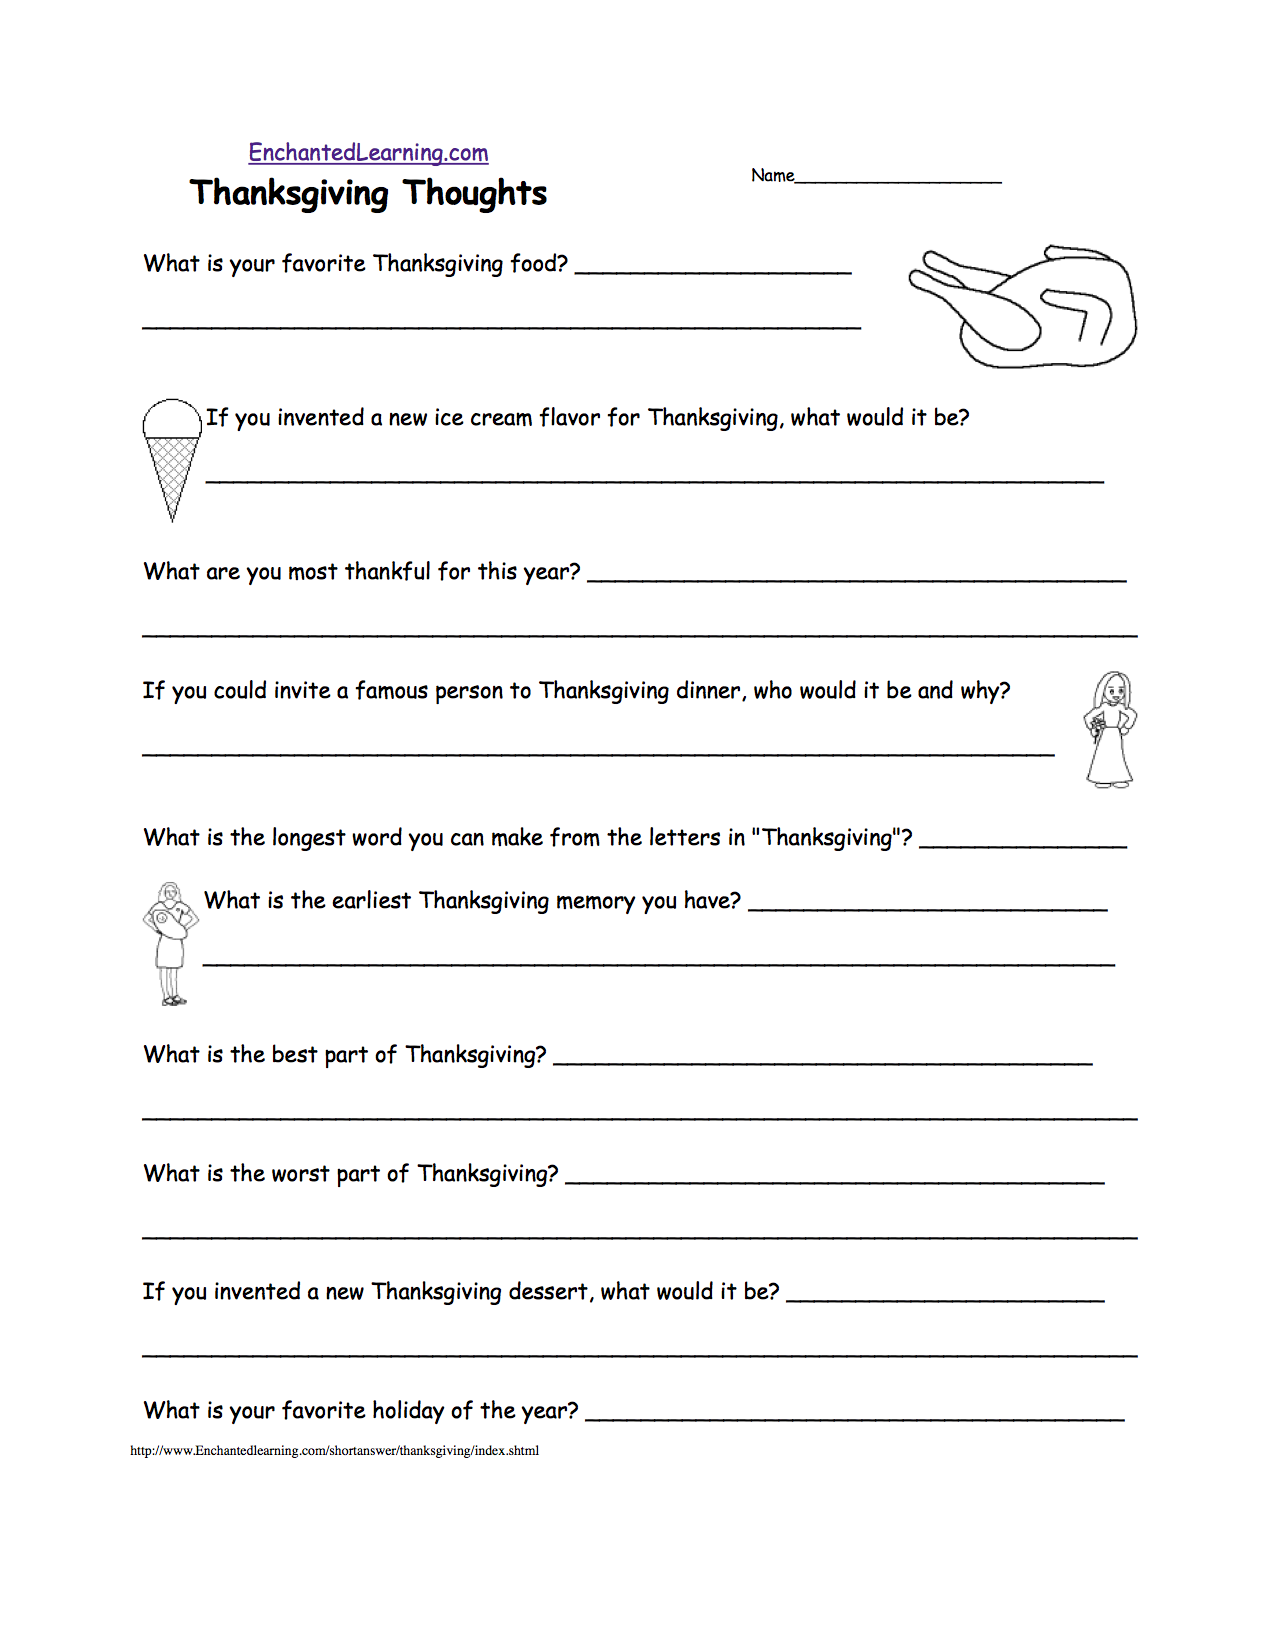 worksheet Thanksgiving Printable Worksheets thanksgiving crafts worksheets and activities thanksgiving